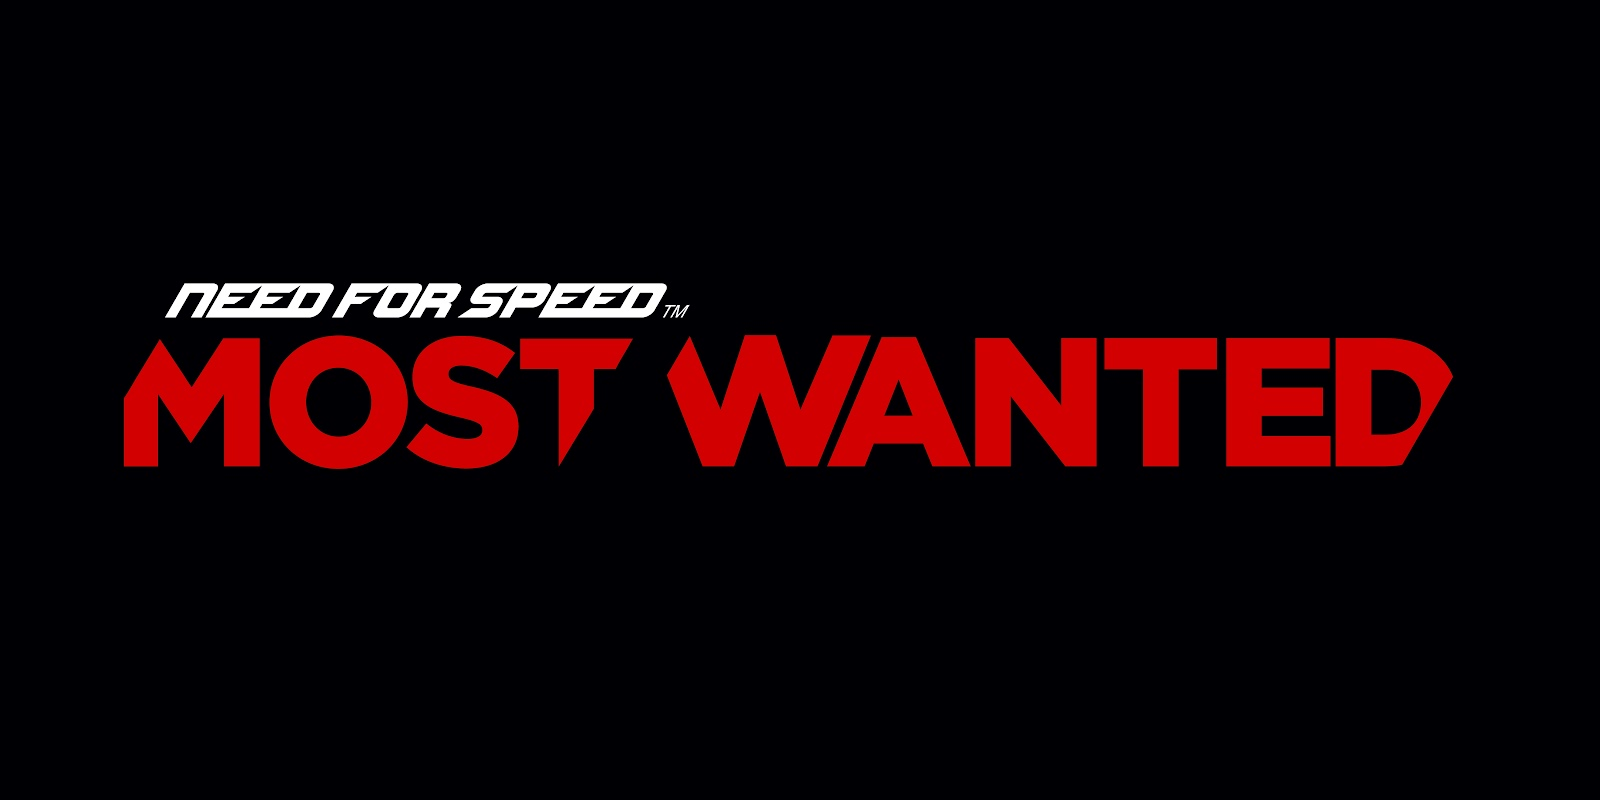 http://3.bp.blogspot.com/-HYU5P96iqTc/UNVM9YlJxrI/AAAAAAAAAV8/OvkdDGqQRwk/s1600/Need-For-Speed-Most-Wanted-2012-Logo--GameWallBase.jpg